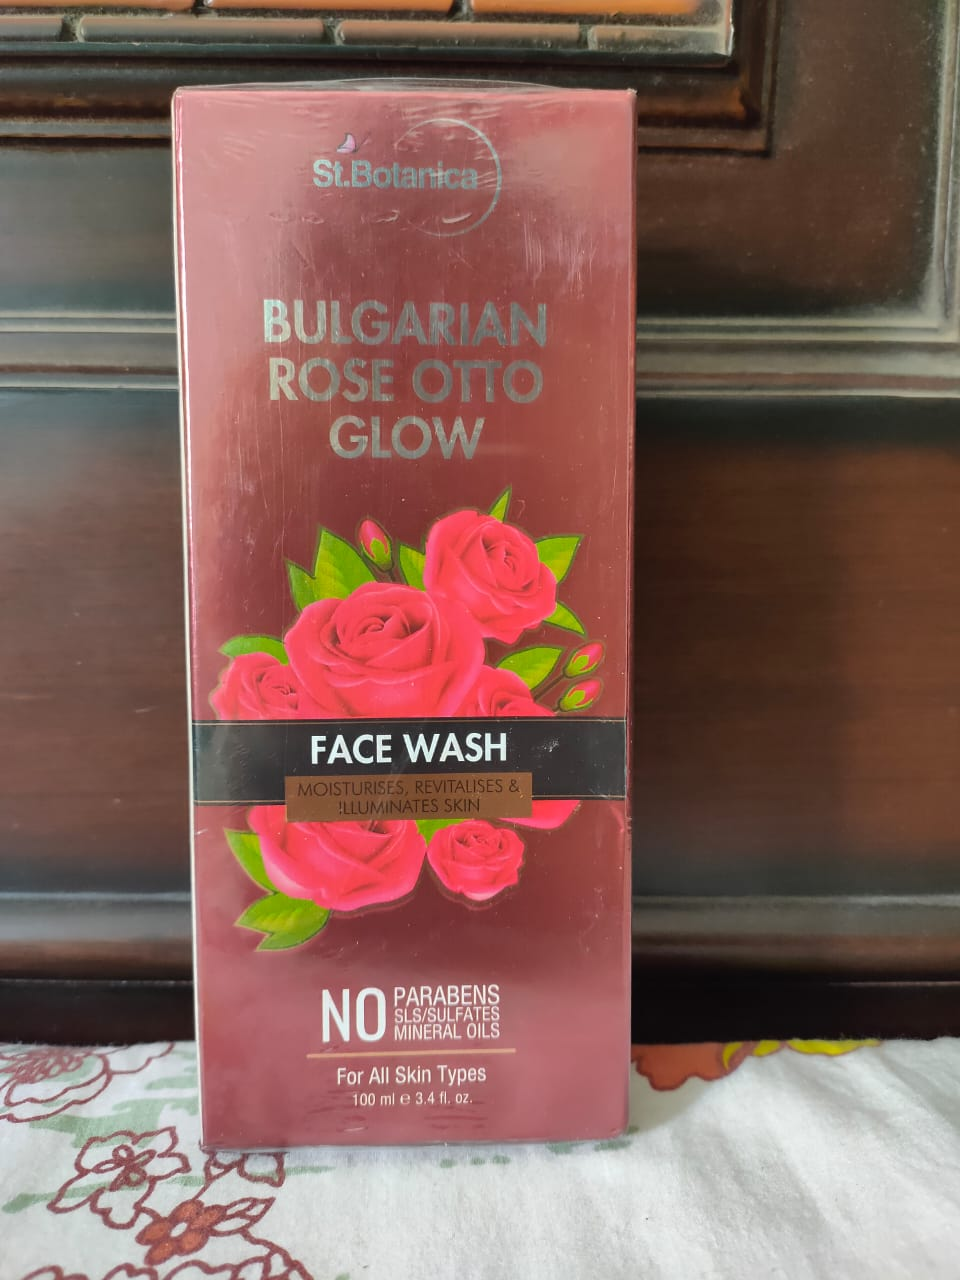 StBotanica Bulgarian Rose Otto Glow Face Wash pic 2-Rejuvenating Face Wash-By rsravani